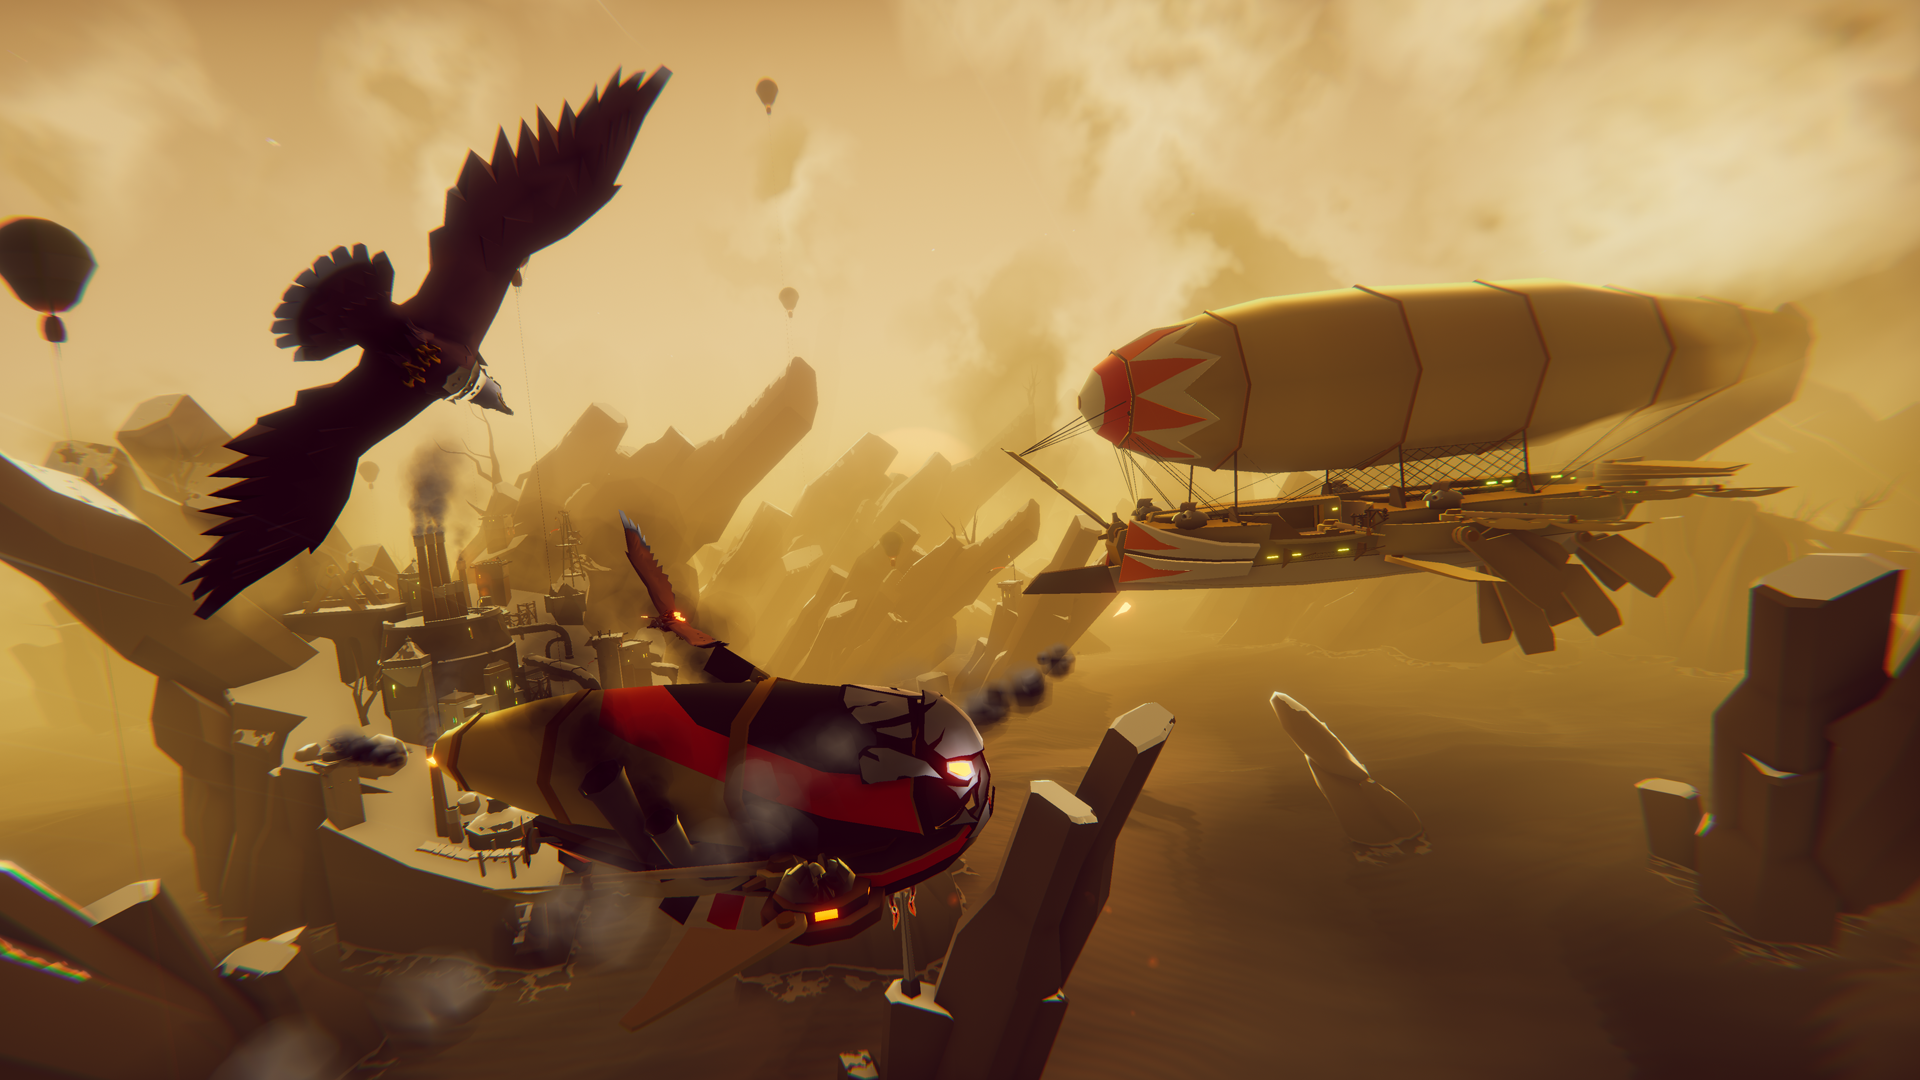 Fantasy Air-Combat Game The Falconeer Receiving Closed Beta - mxdwn Games